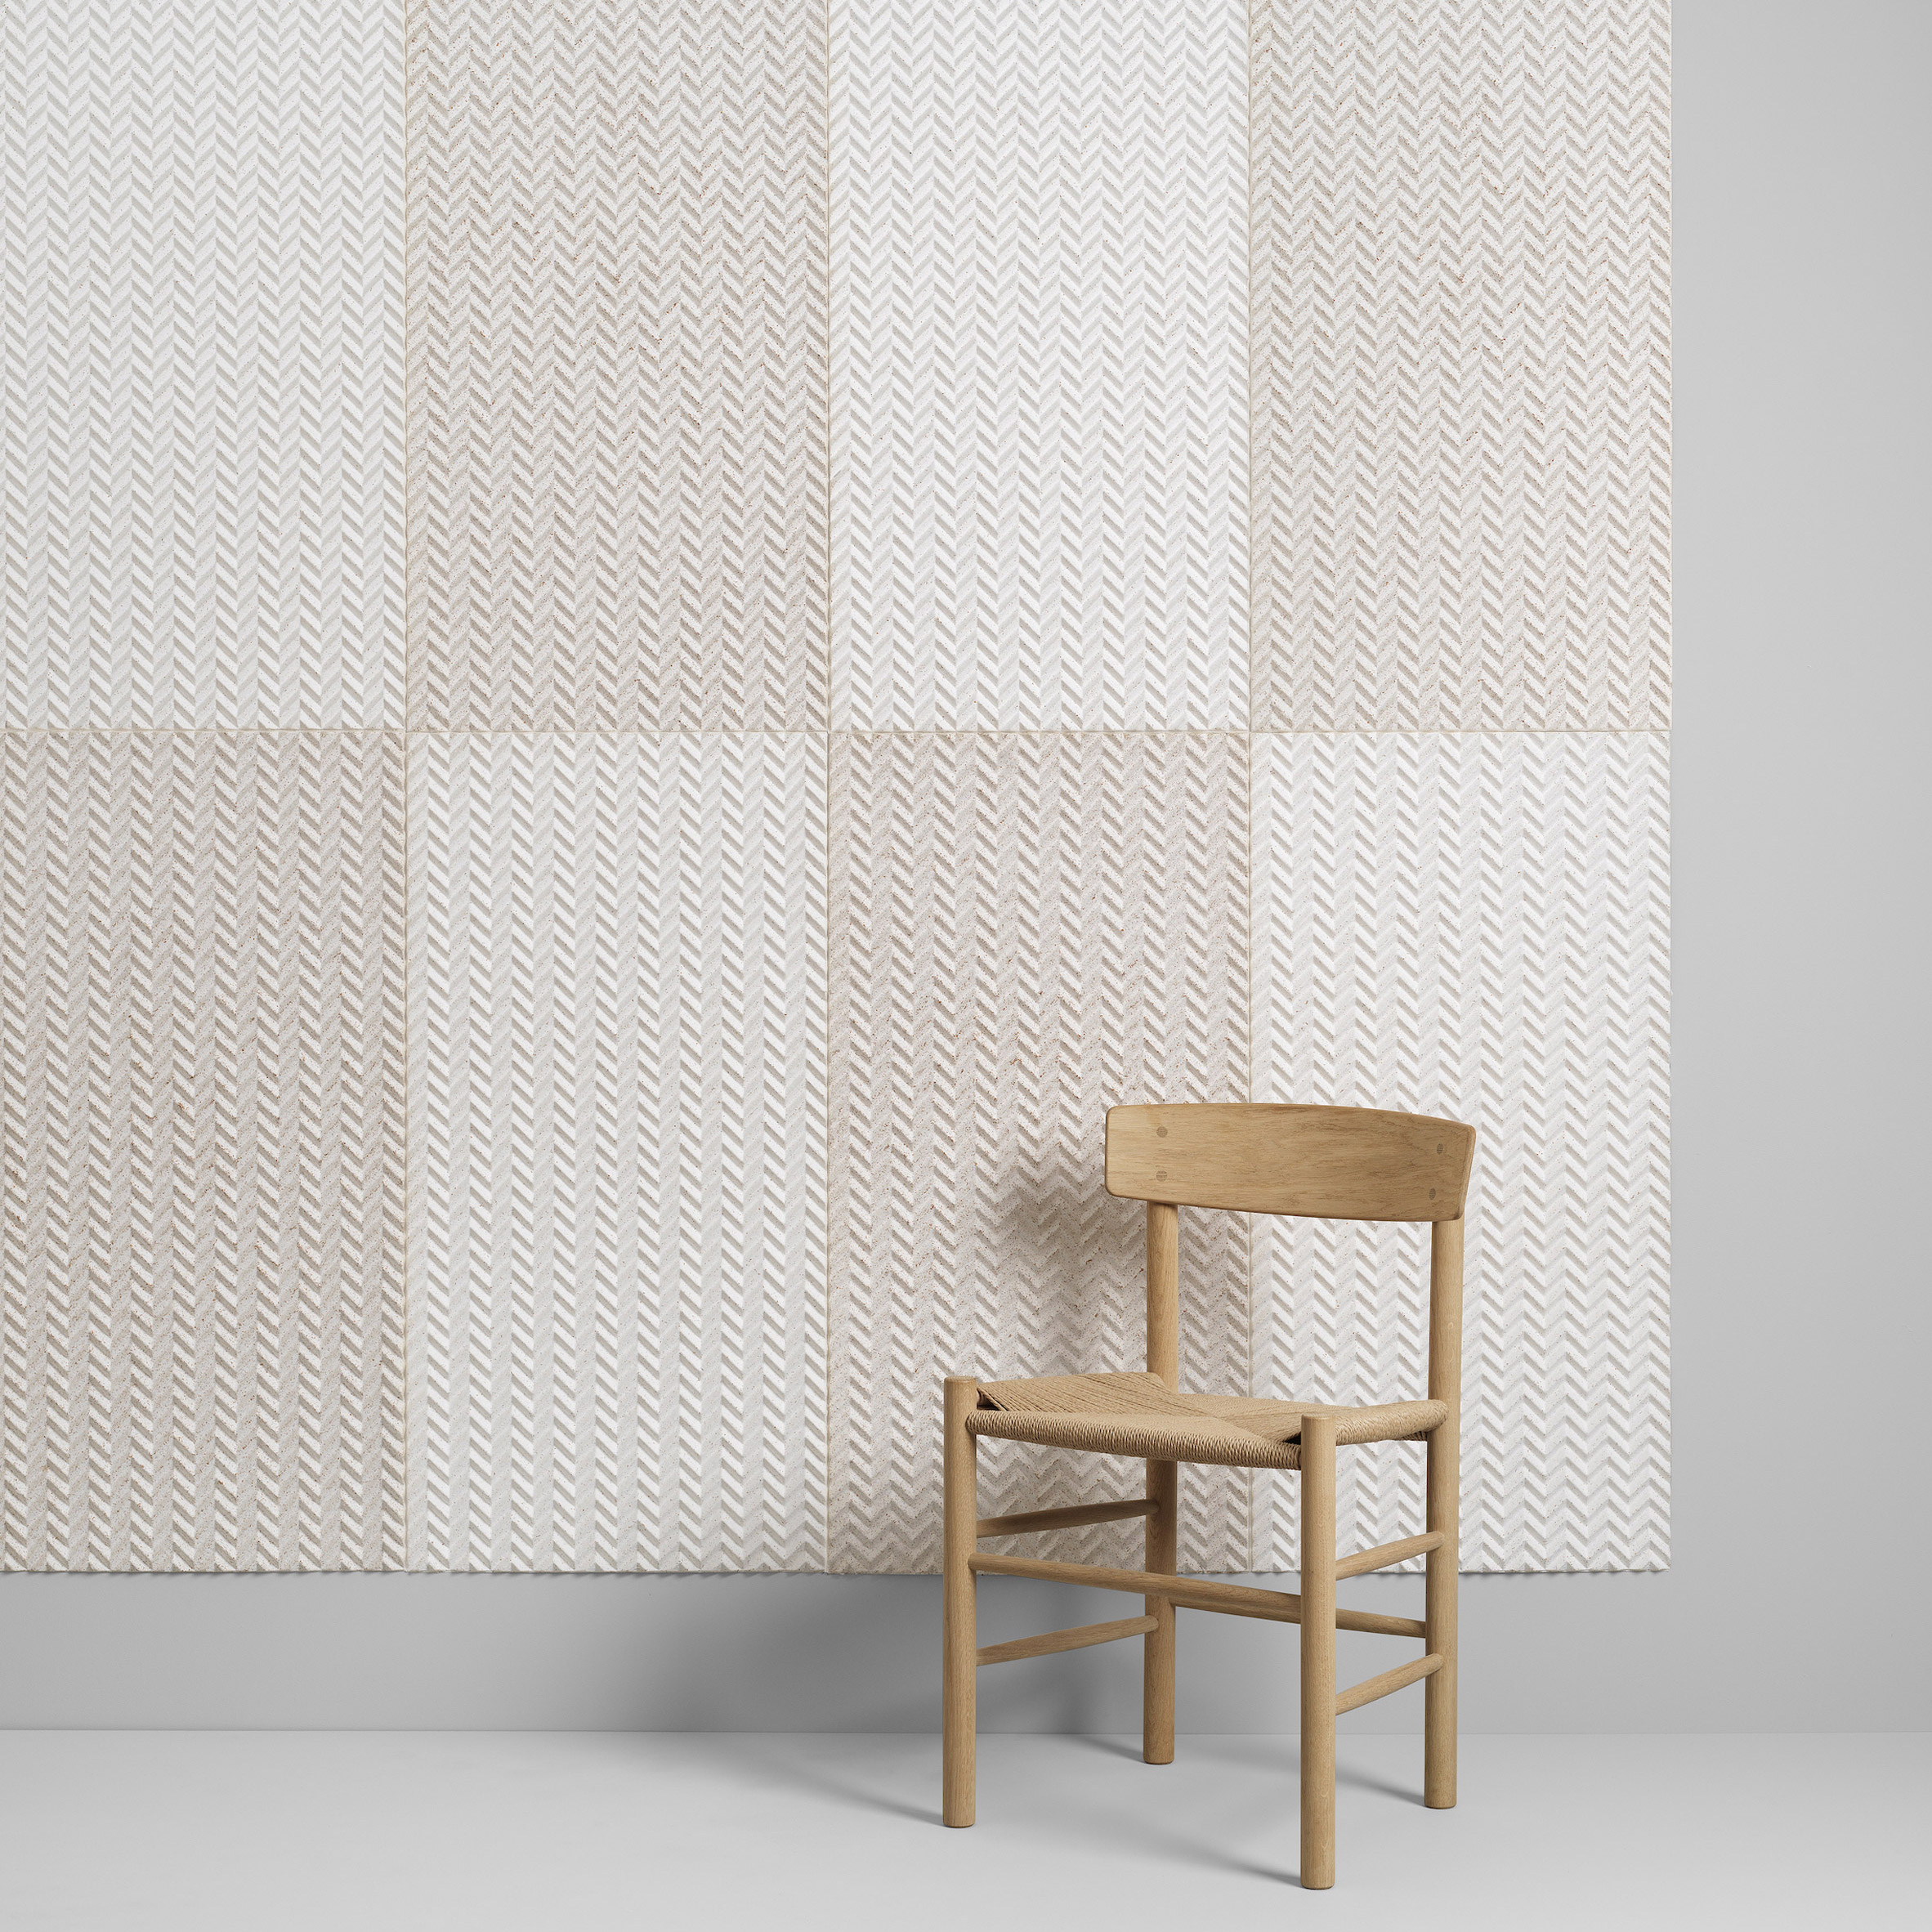 Baux Acoustic Pulp Panels Are Made From A Plant Based Material